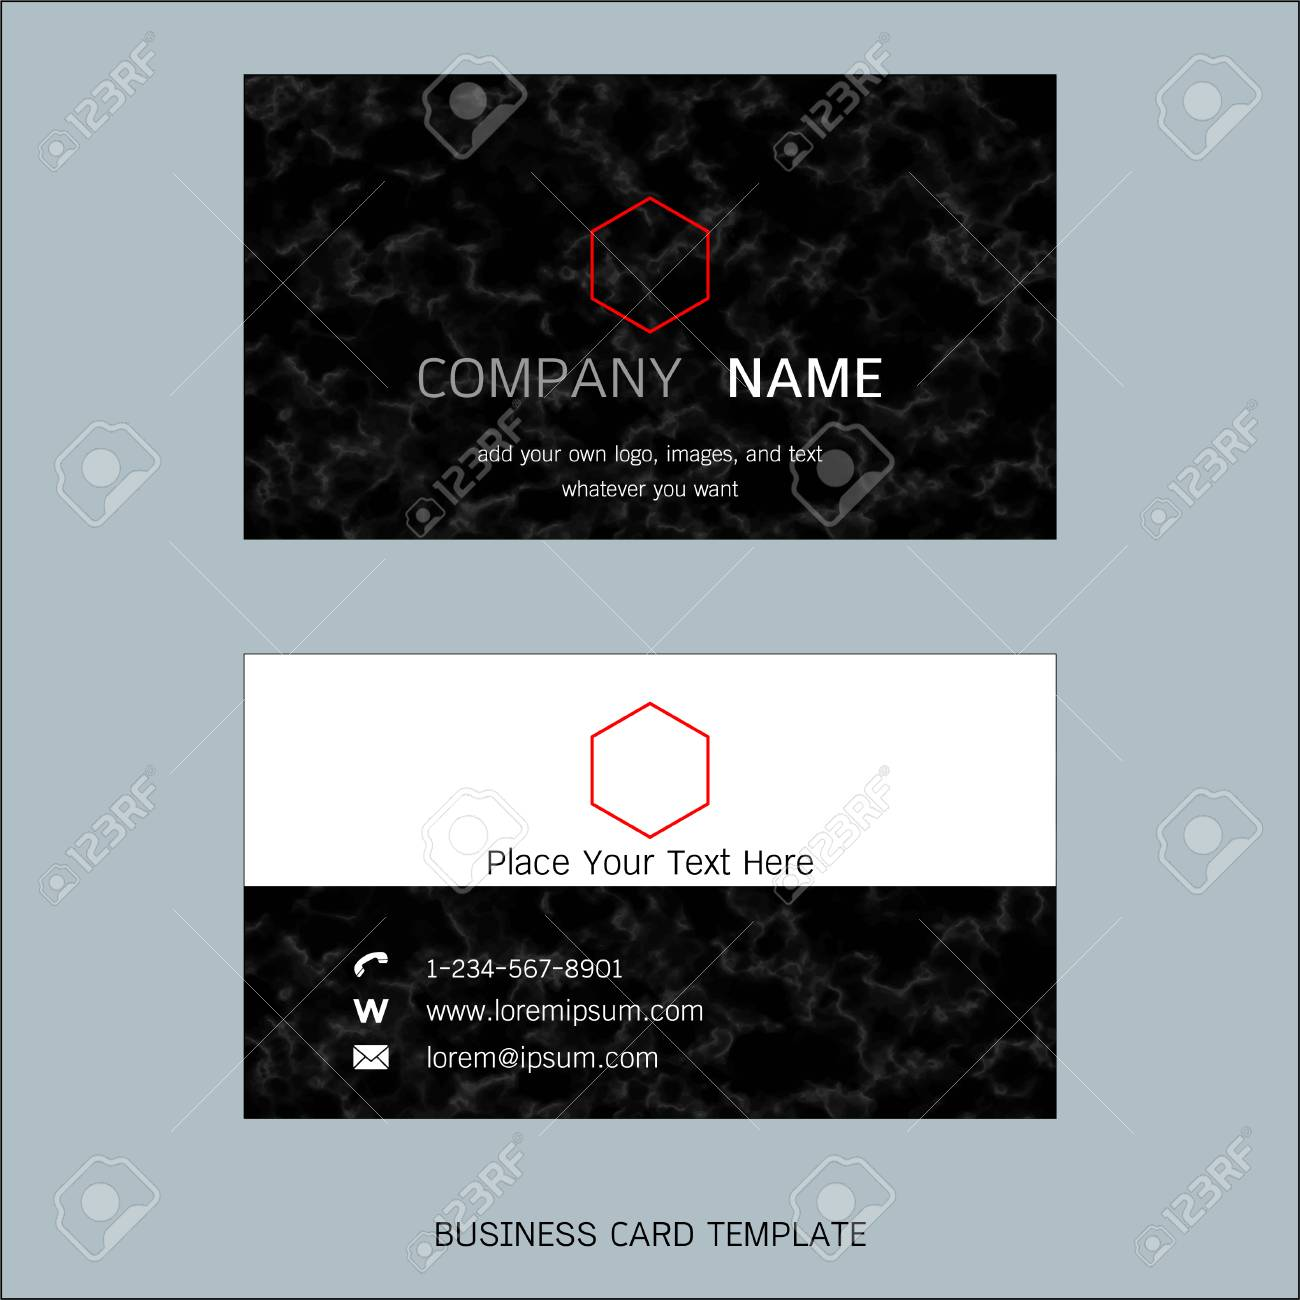 Modern designer business card layout templates marble texture modern designer business card layout templates marble texture background easy to use by print cheaphphosting Choice Image